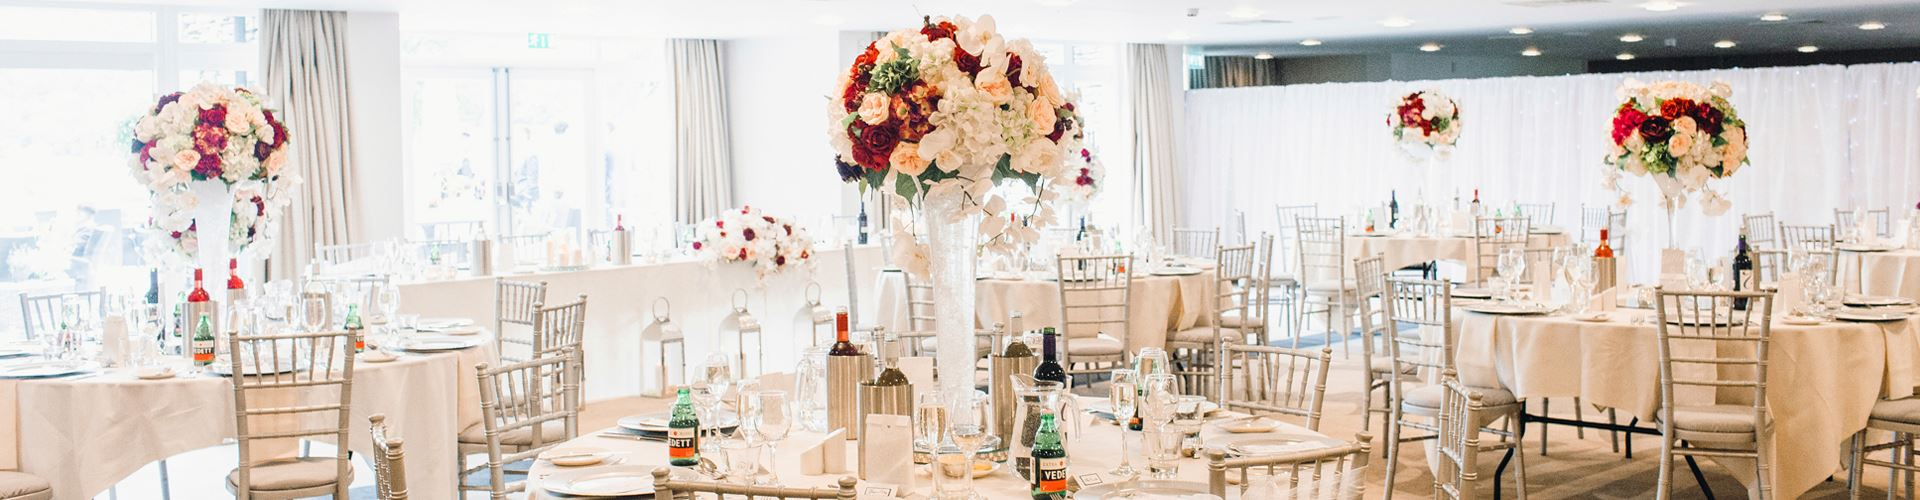 A landscape shot of a wedding reception set up with large round tables, white and red bouquets in the centre of each and elegant furnishings with place settings and bottles of wine